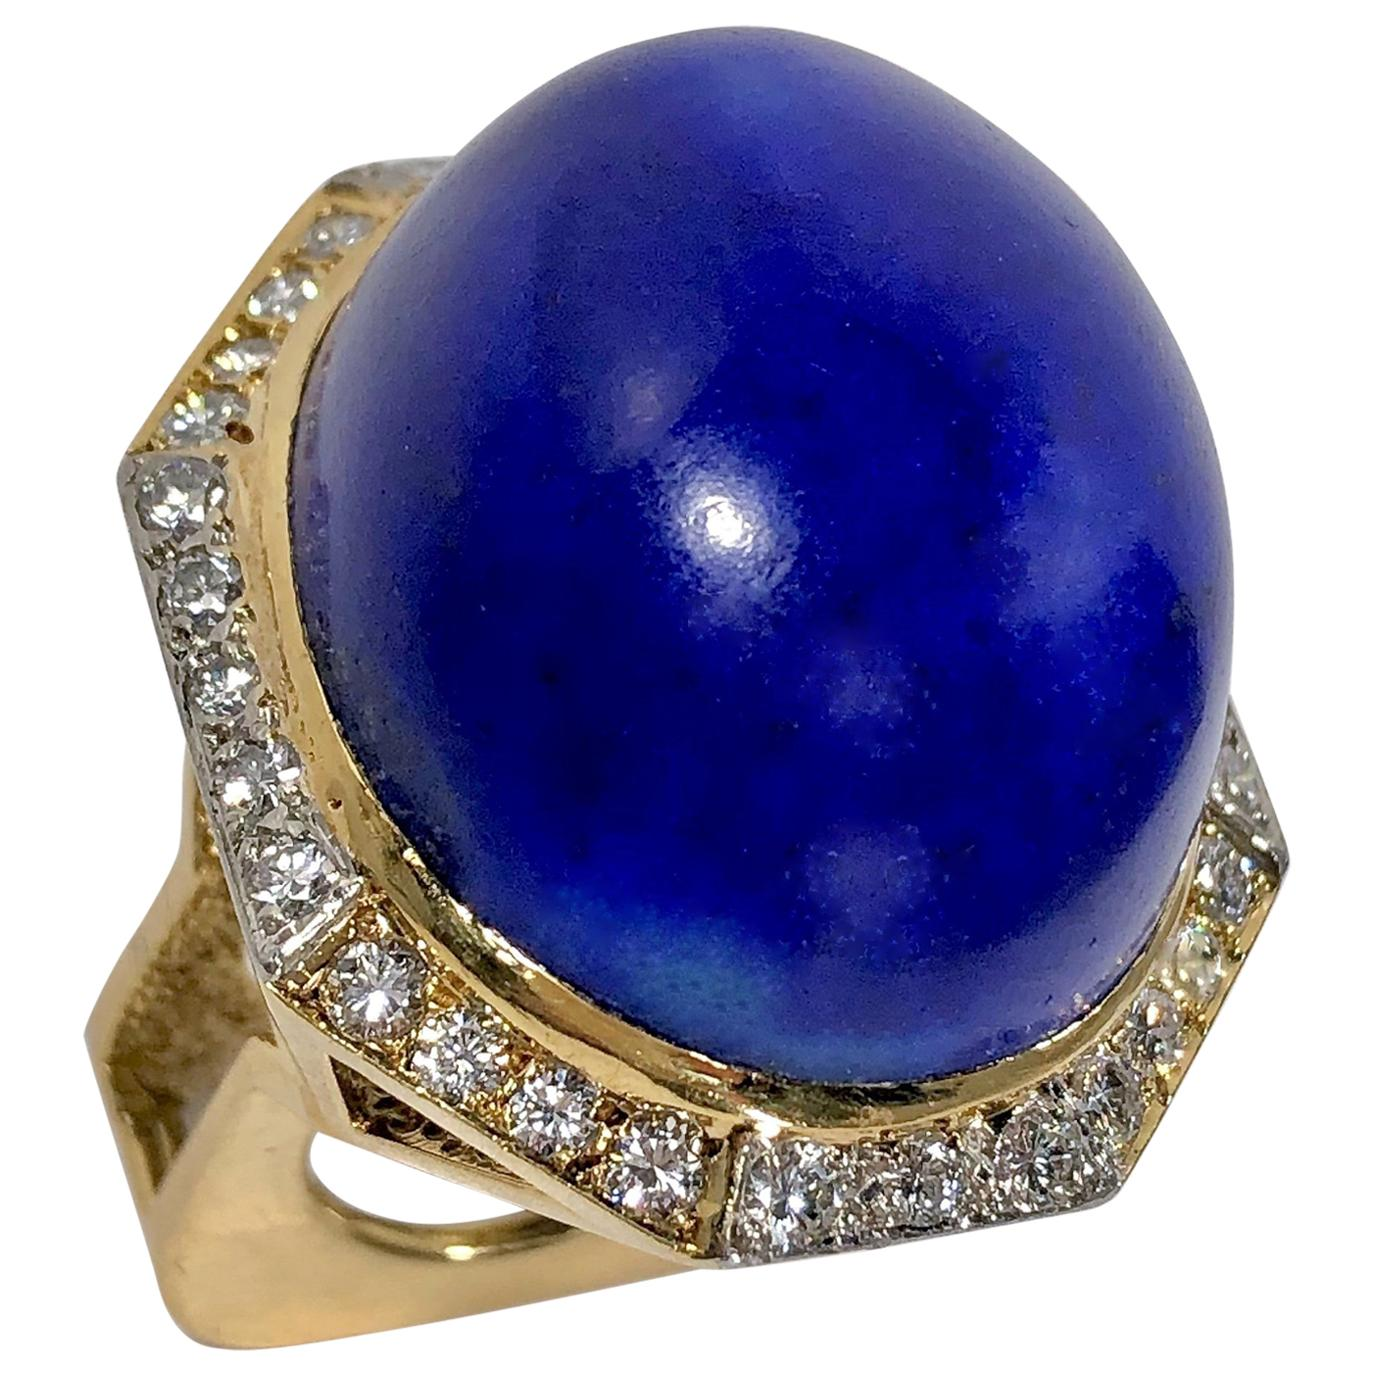 Massive Gold Cocktail Ring with 86 Carat Lapis-Lazuli Cabochon and Diamonds